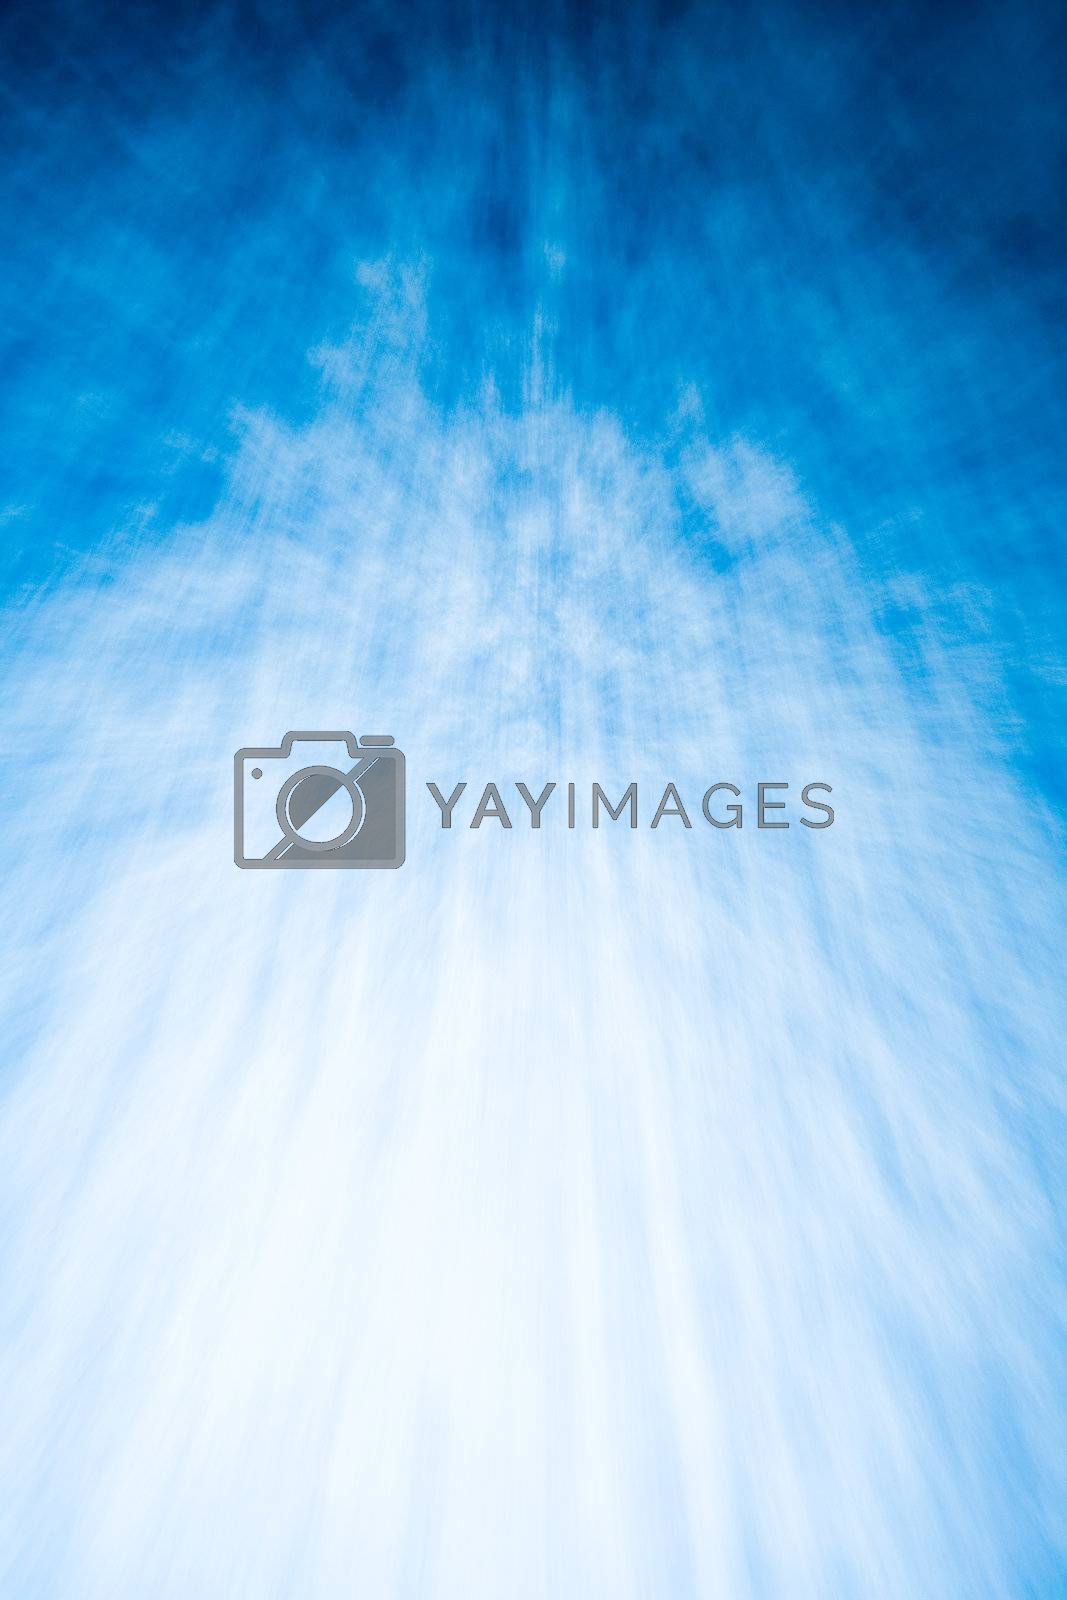 Royalty free image of Abstract Background by Luminis